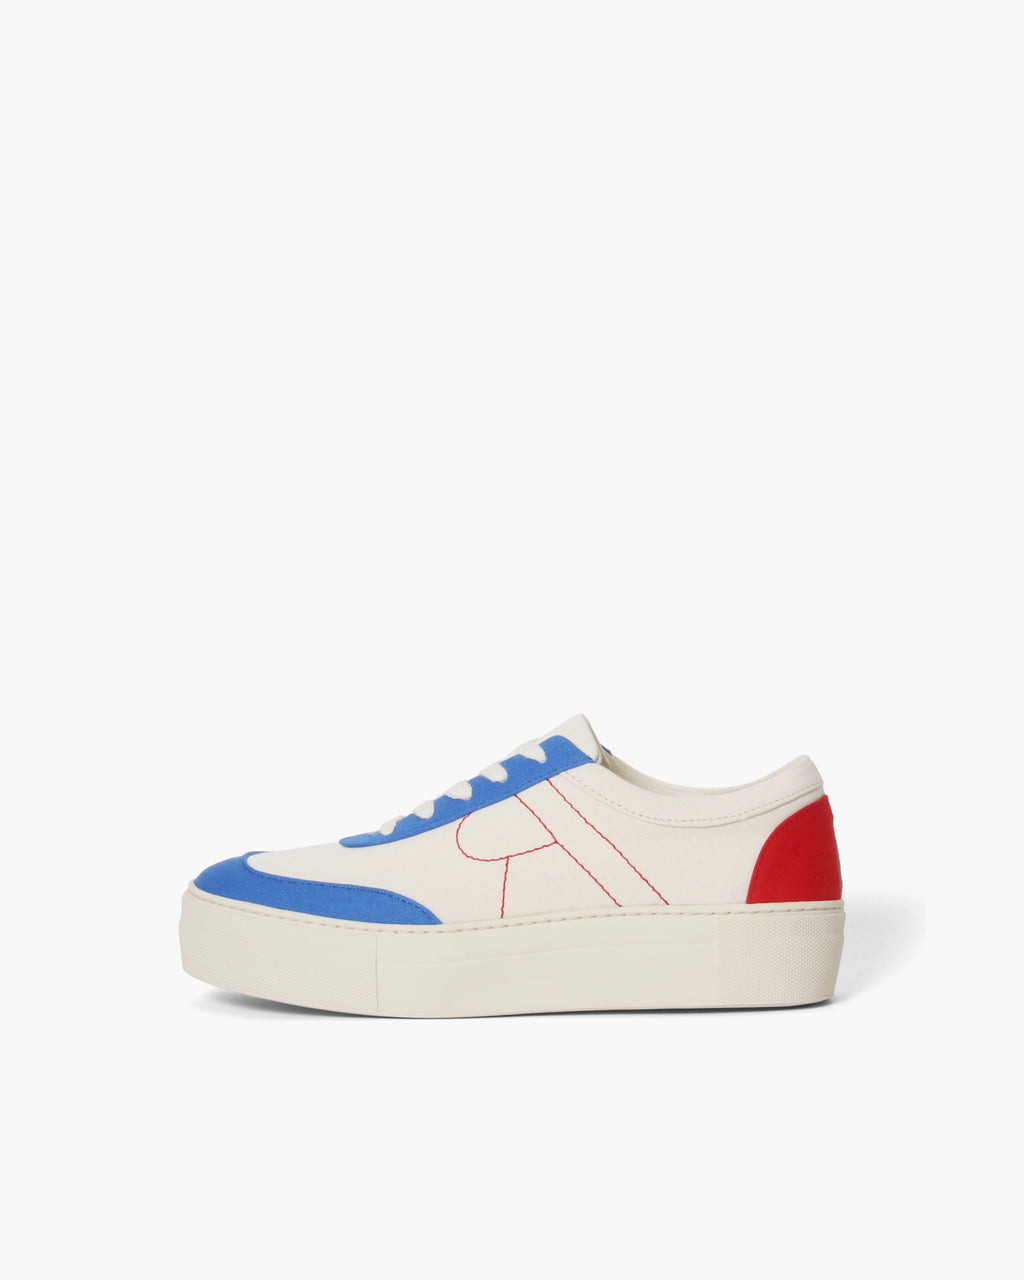 Bailey Sneakers Cotton Canvas Blue + Red - UNISEX